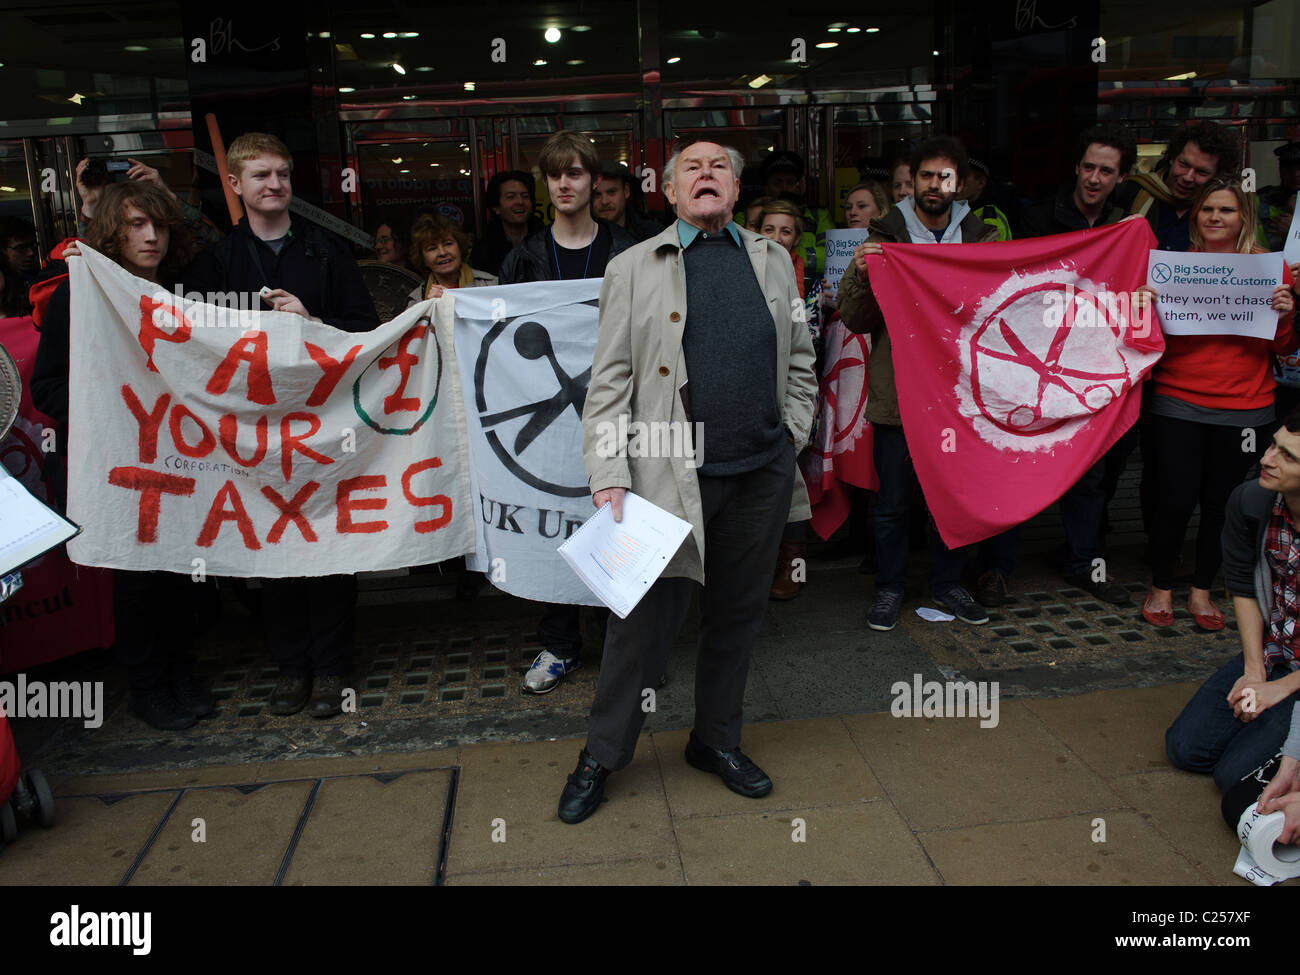 UK Uncut, the anti-cuts direct action group, Oxford Street, London 2011 - Stock Image